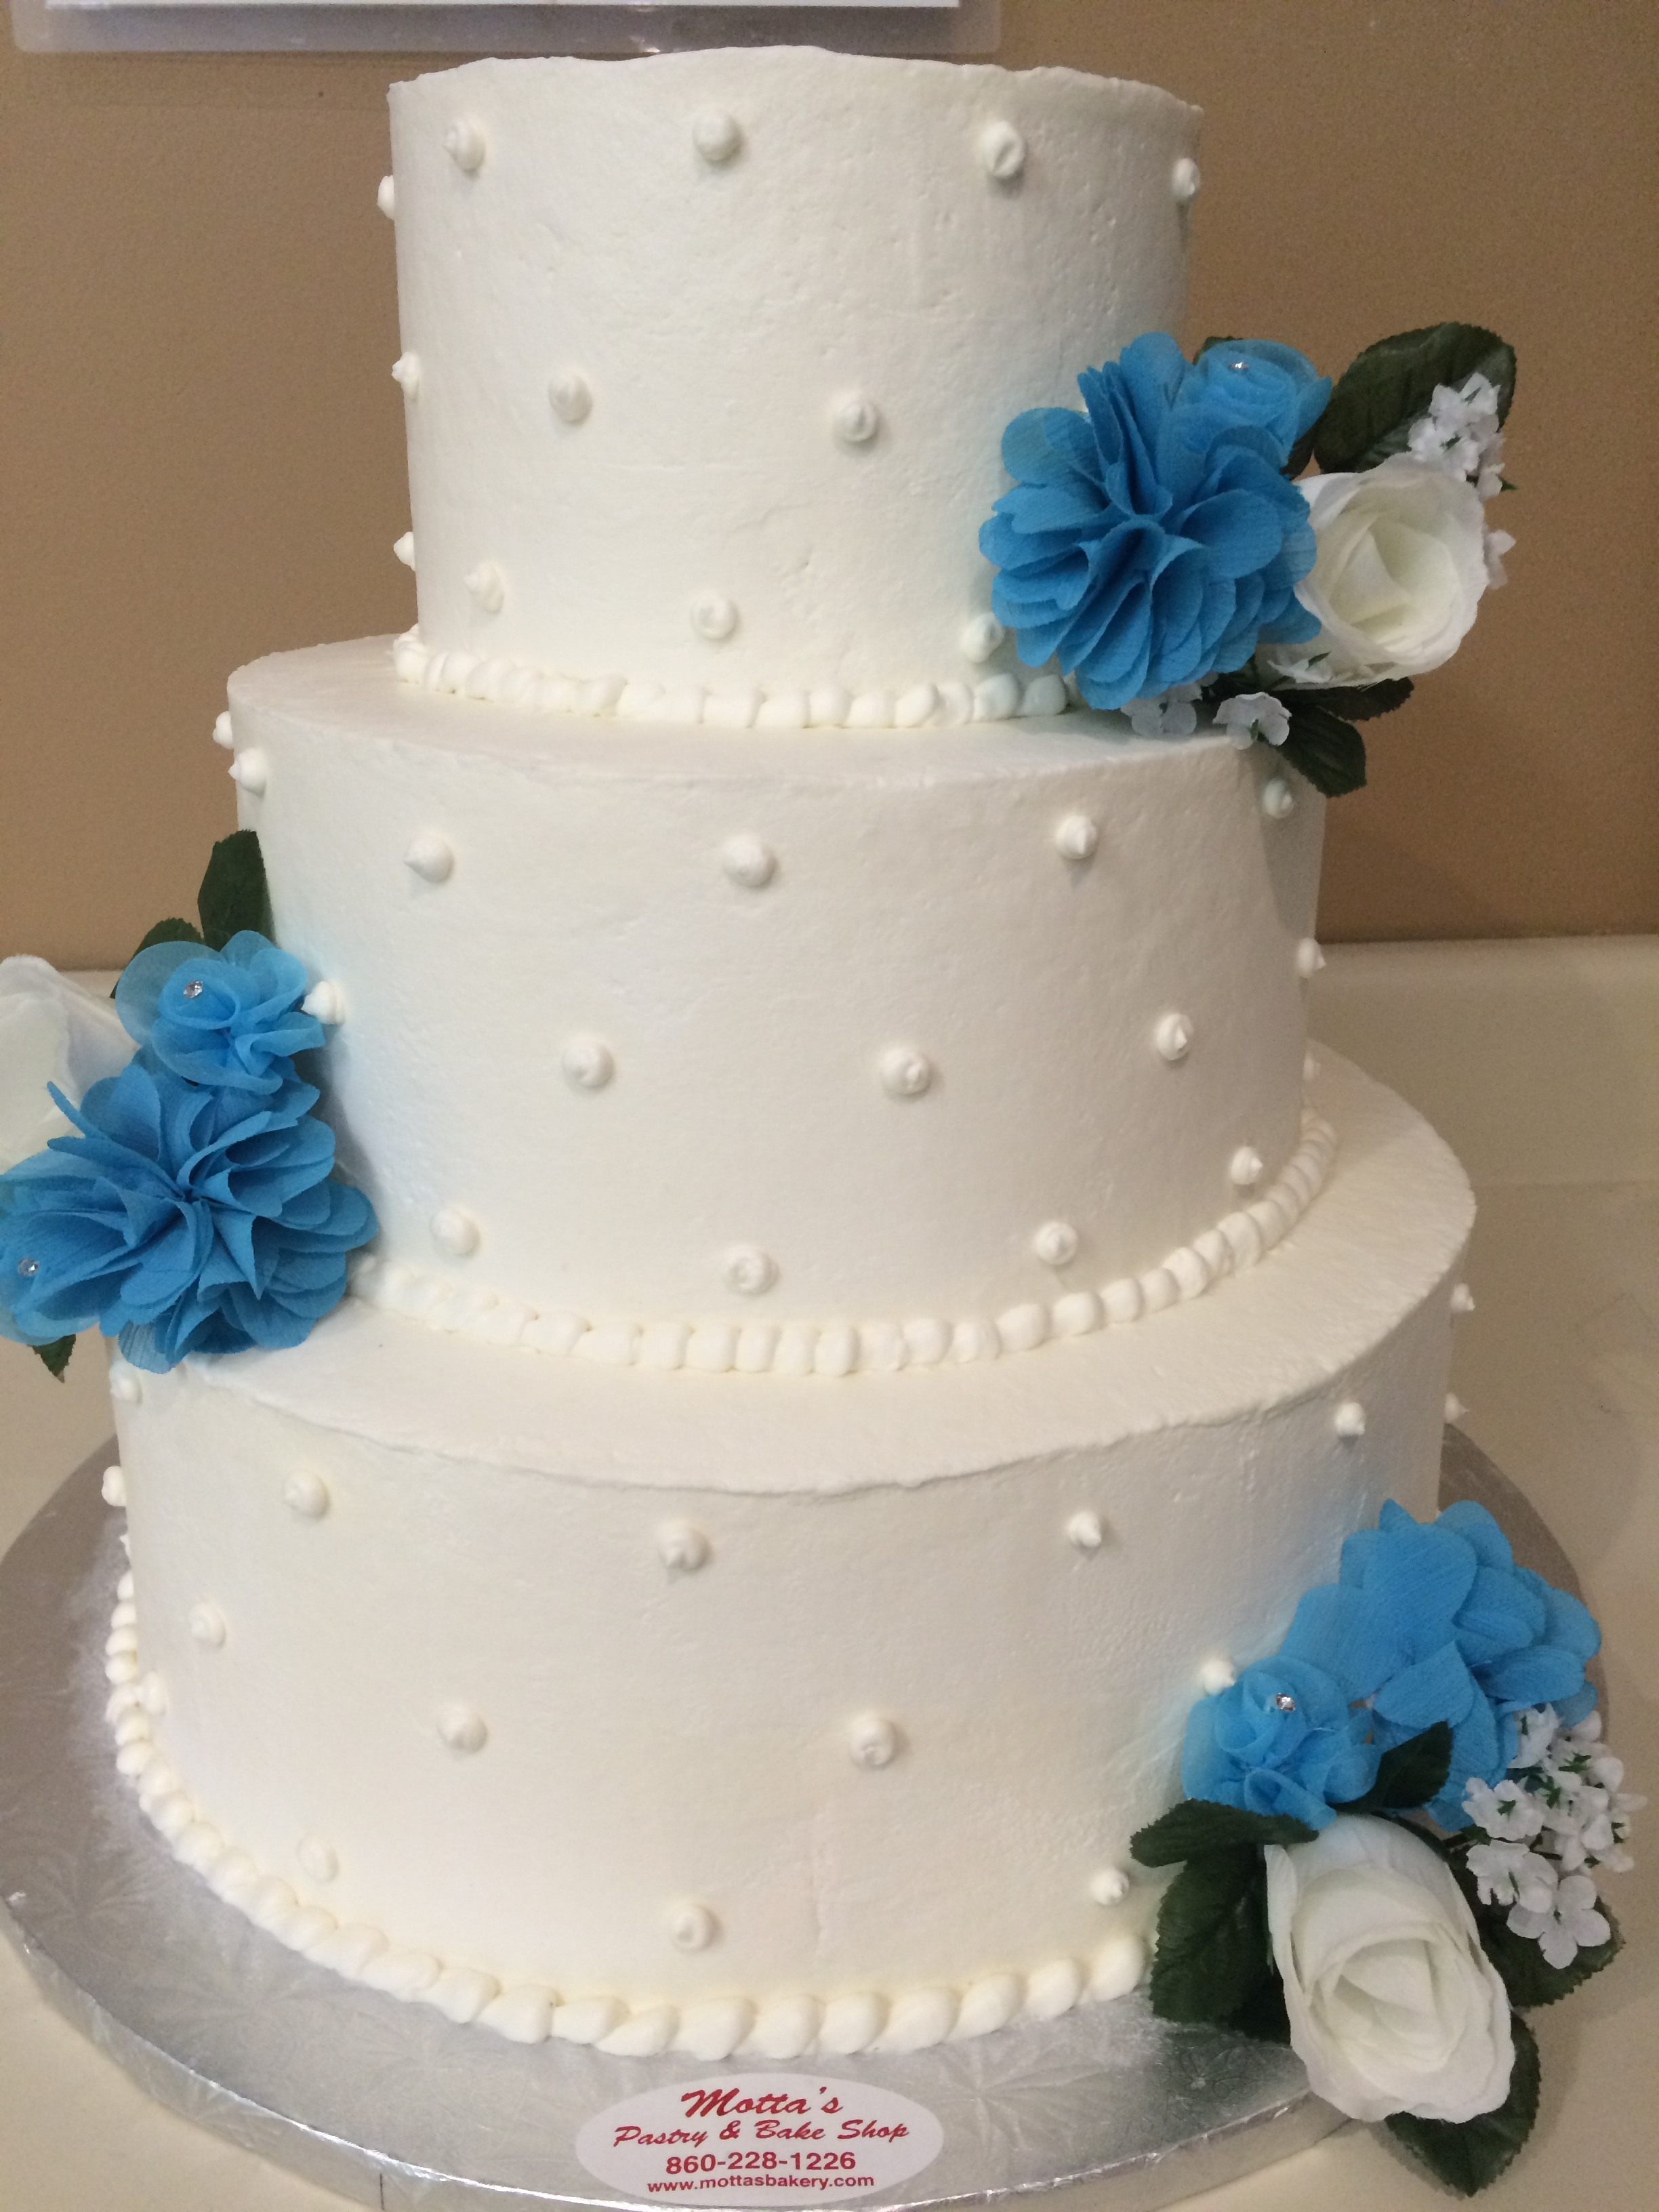 White Wedding Cake.JPG